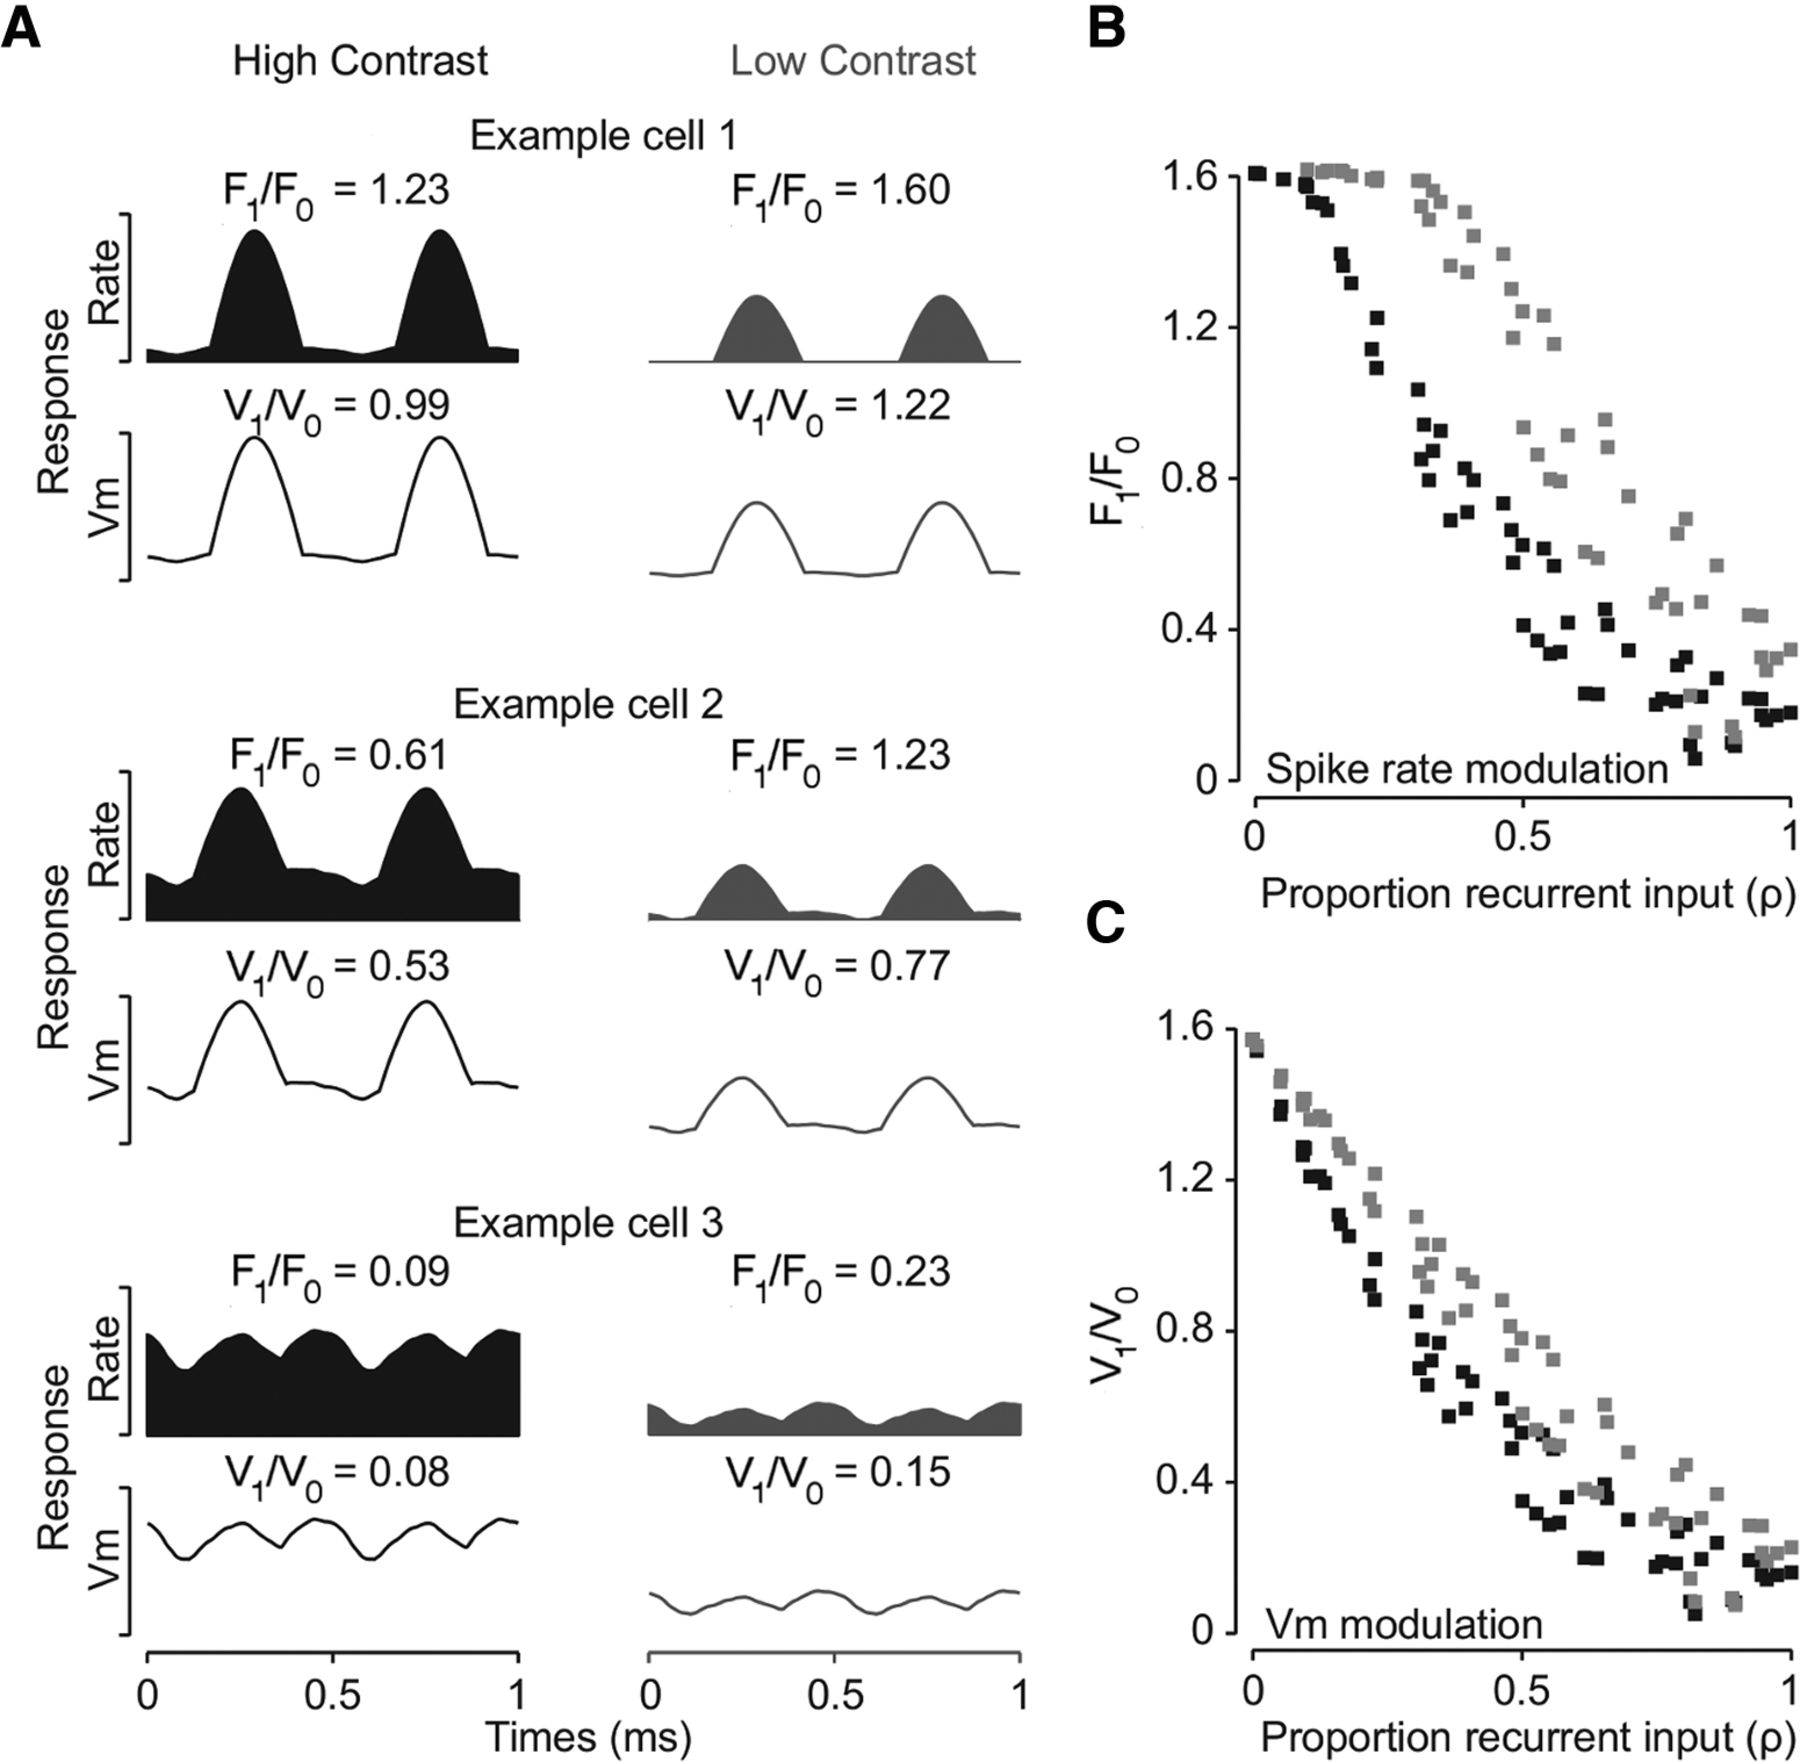 Synaptic Basis for Contrast-Dependent Shifts in Functional Identity